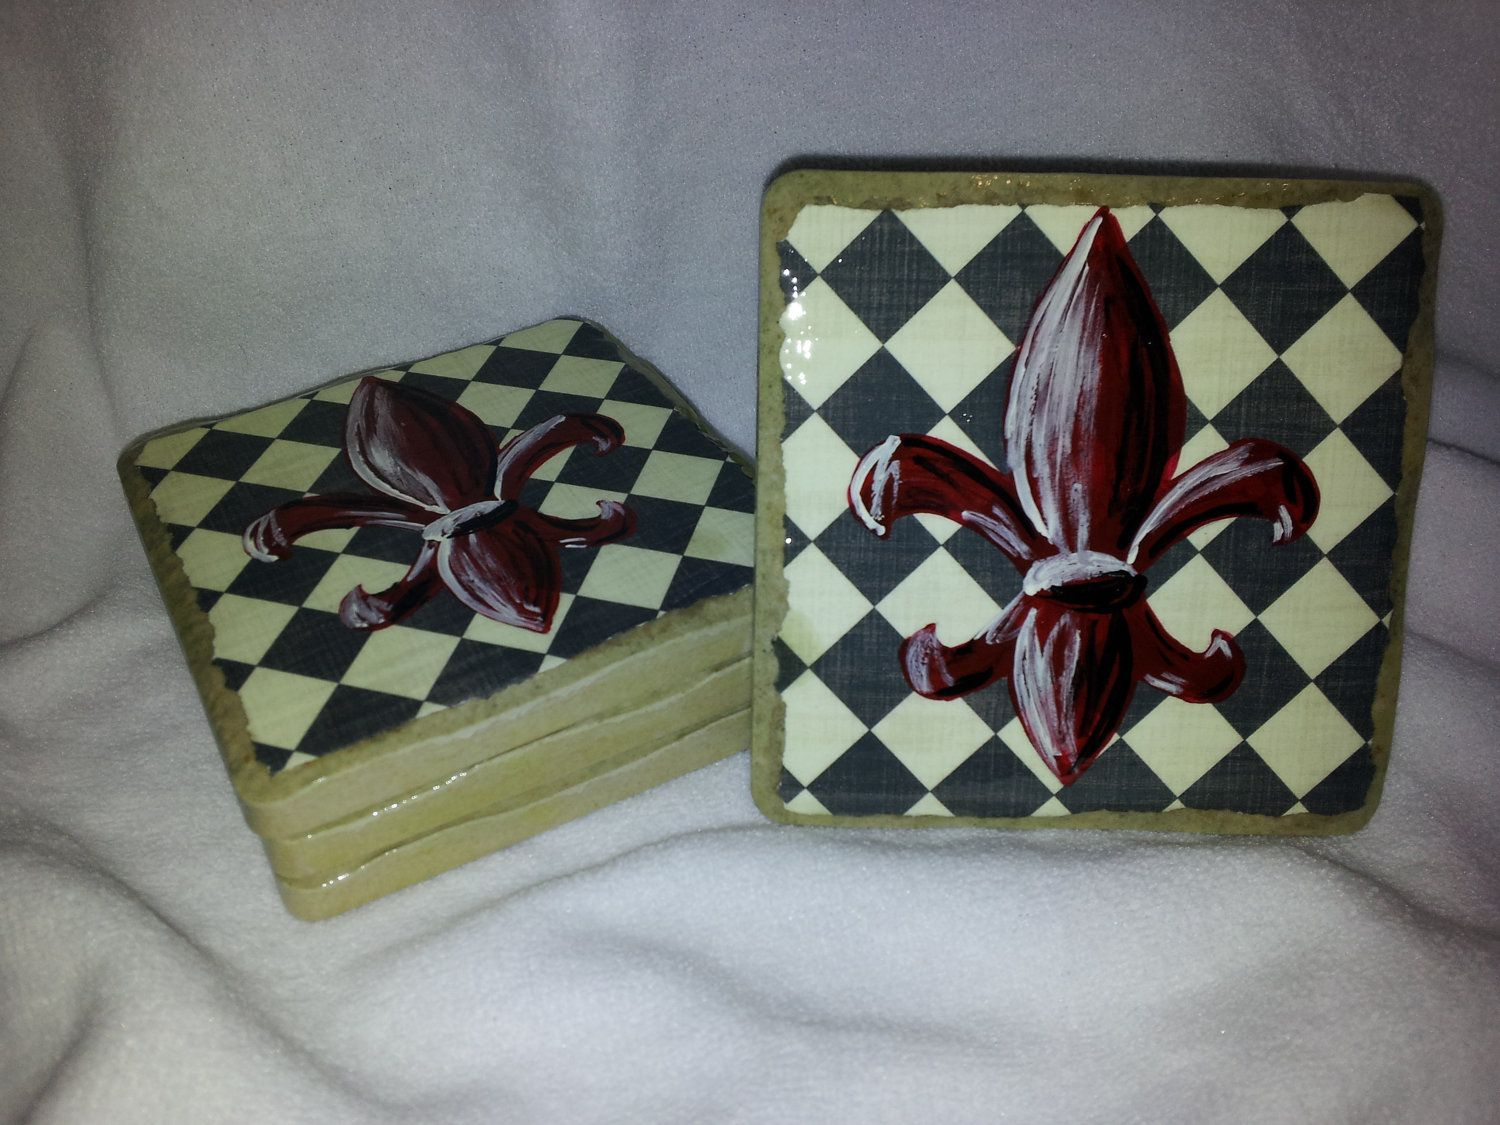 Red Handpainted Fleur de Lis on a Black and White